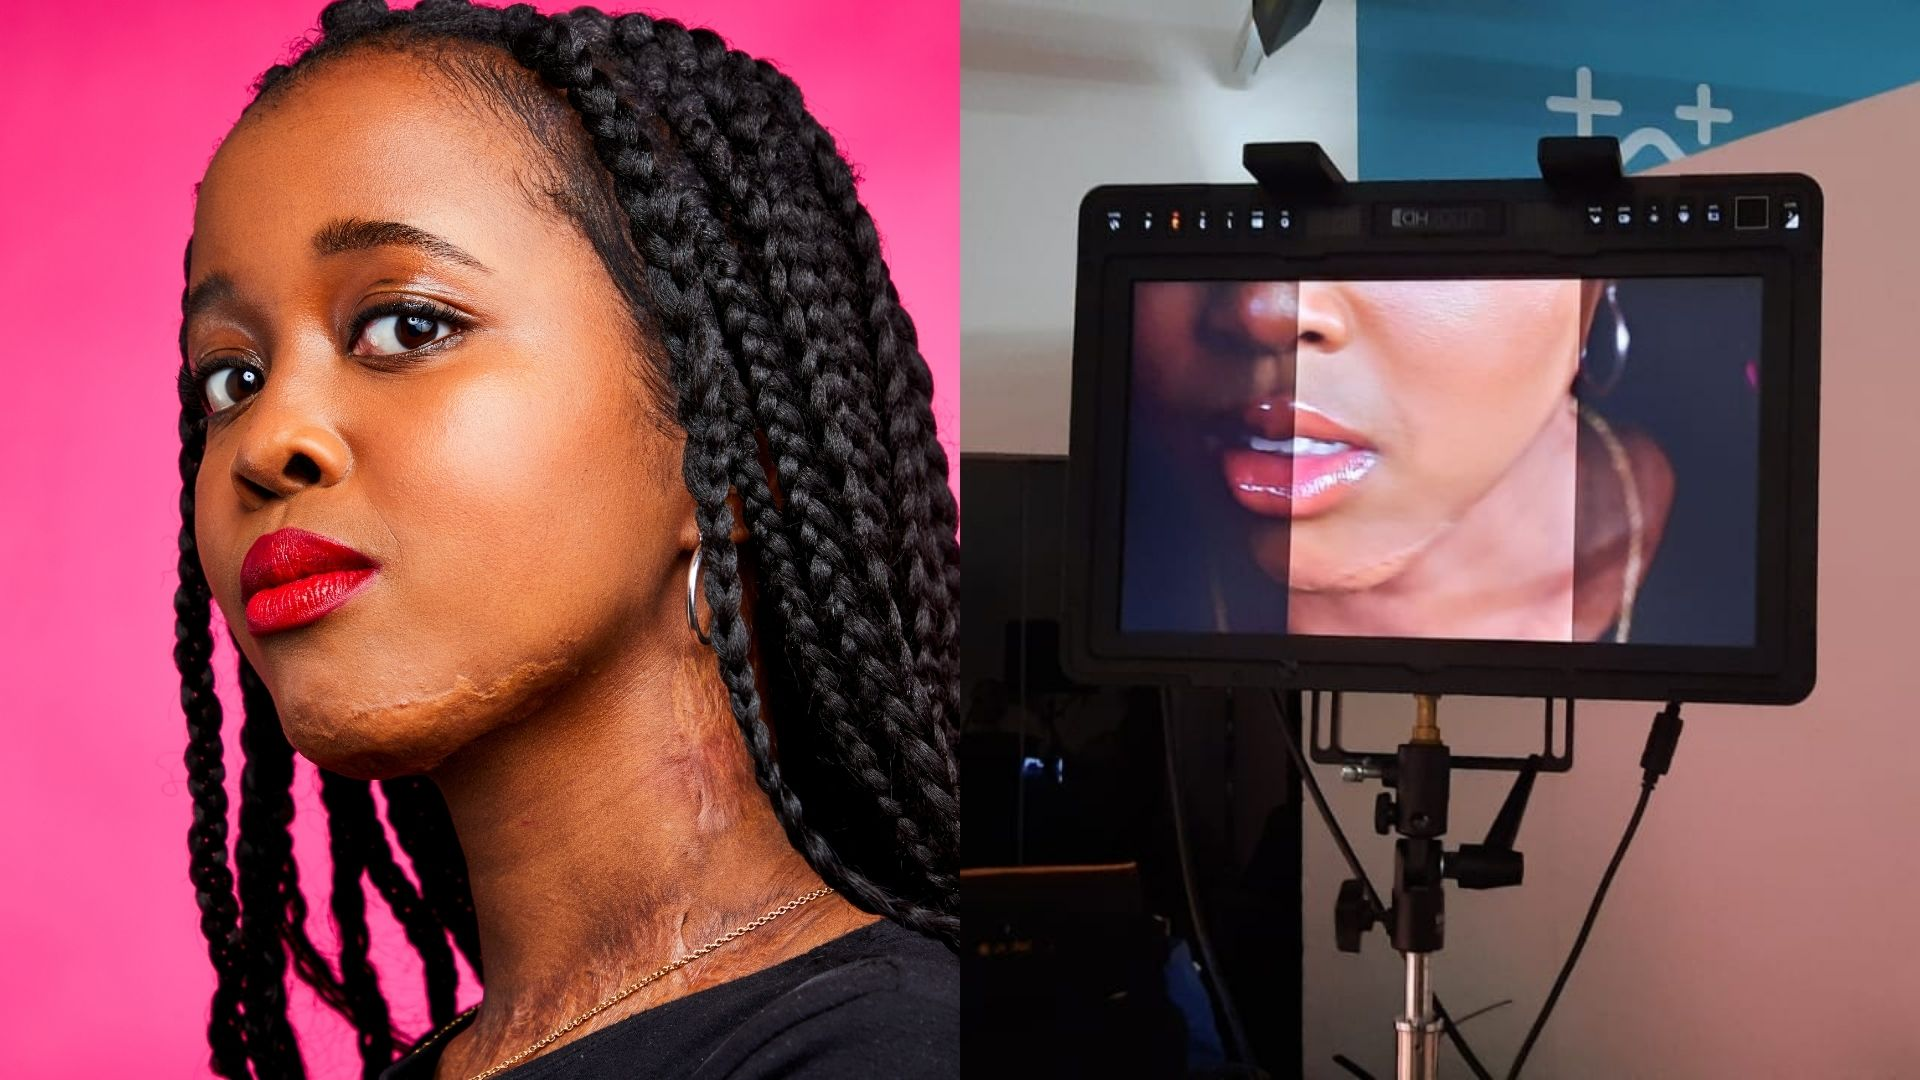 Left: A woman, early 20s. She has black braided hair and is wearing a black t-shirt and red lipstick. She is stood in front of a pink background. Right: A tv monitor on a stand shows an image of the bottom half of a young girl's face.